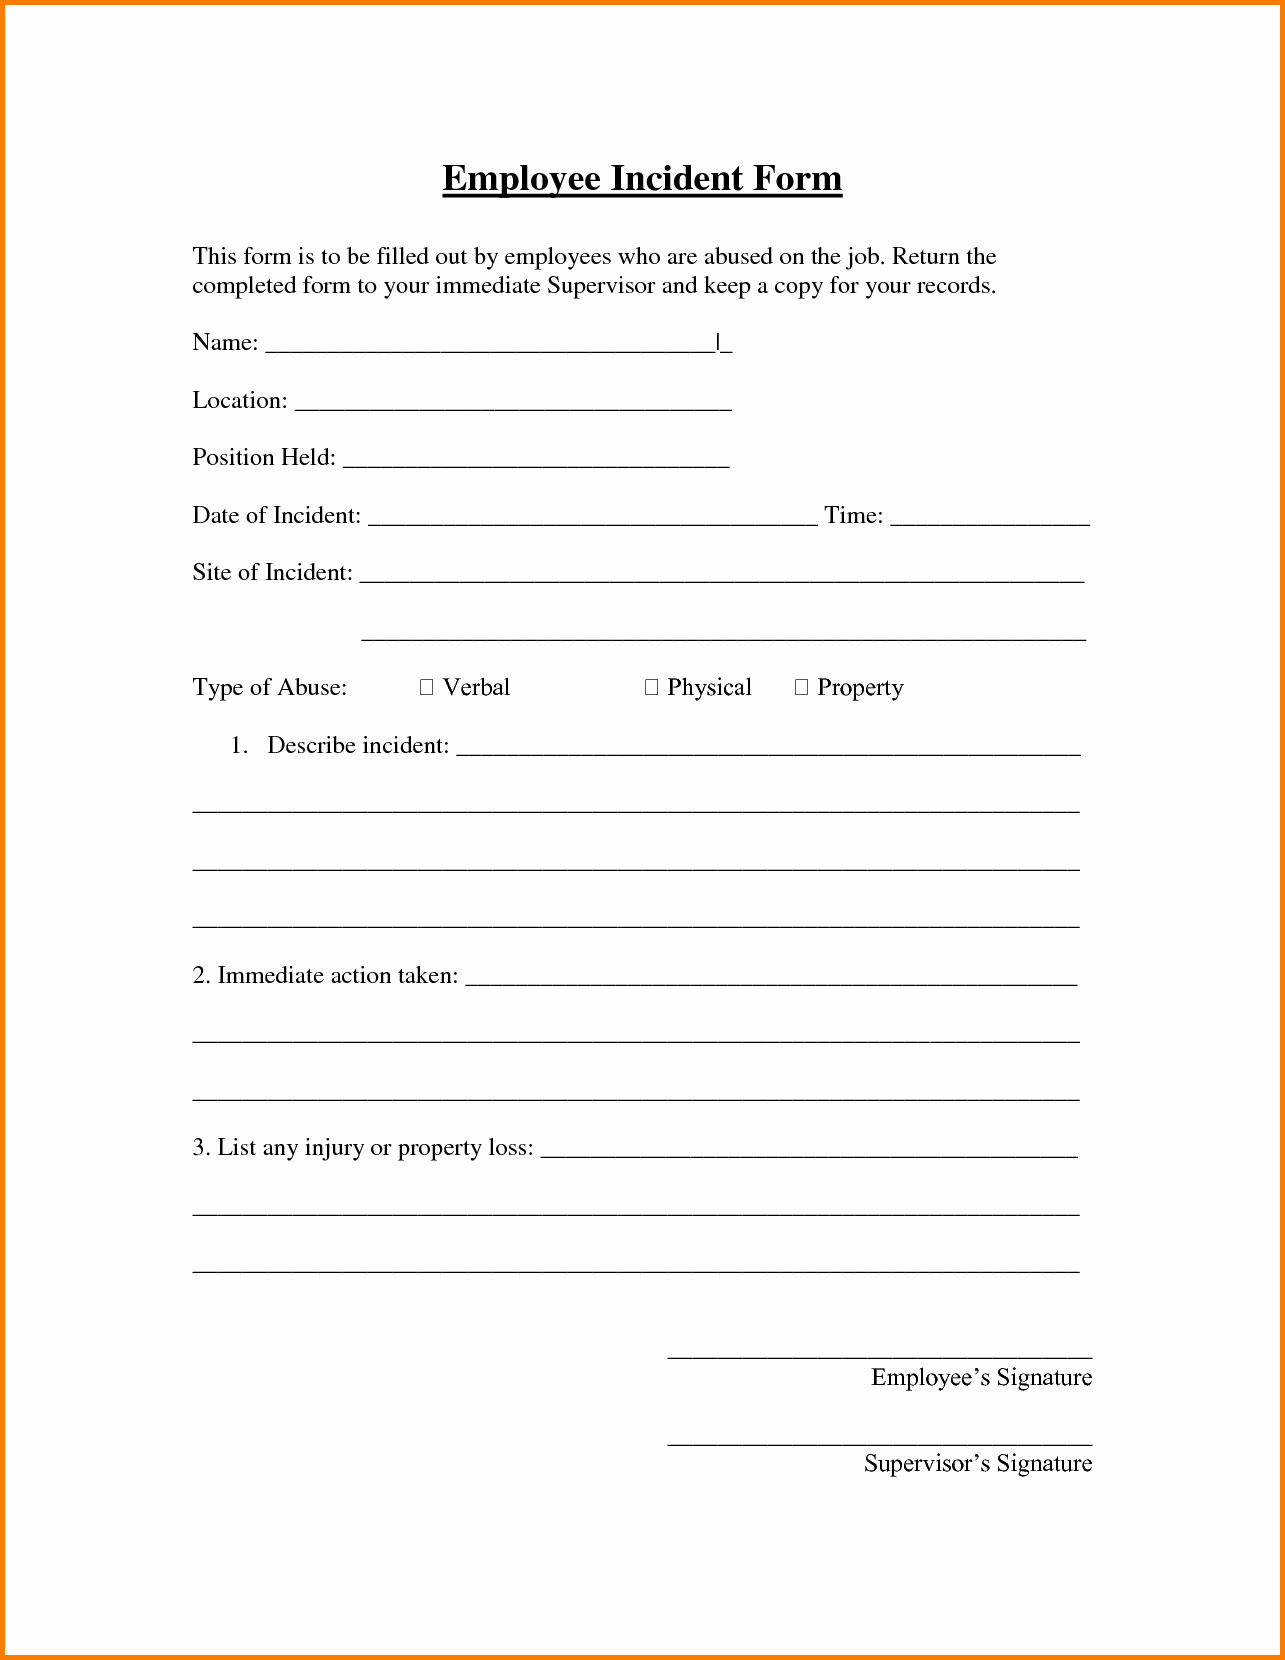 Incident Report Sample In Nursing New Employee Incident Report Sample